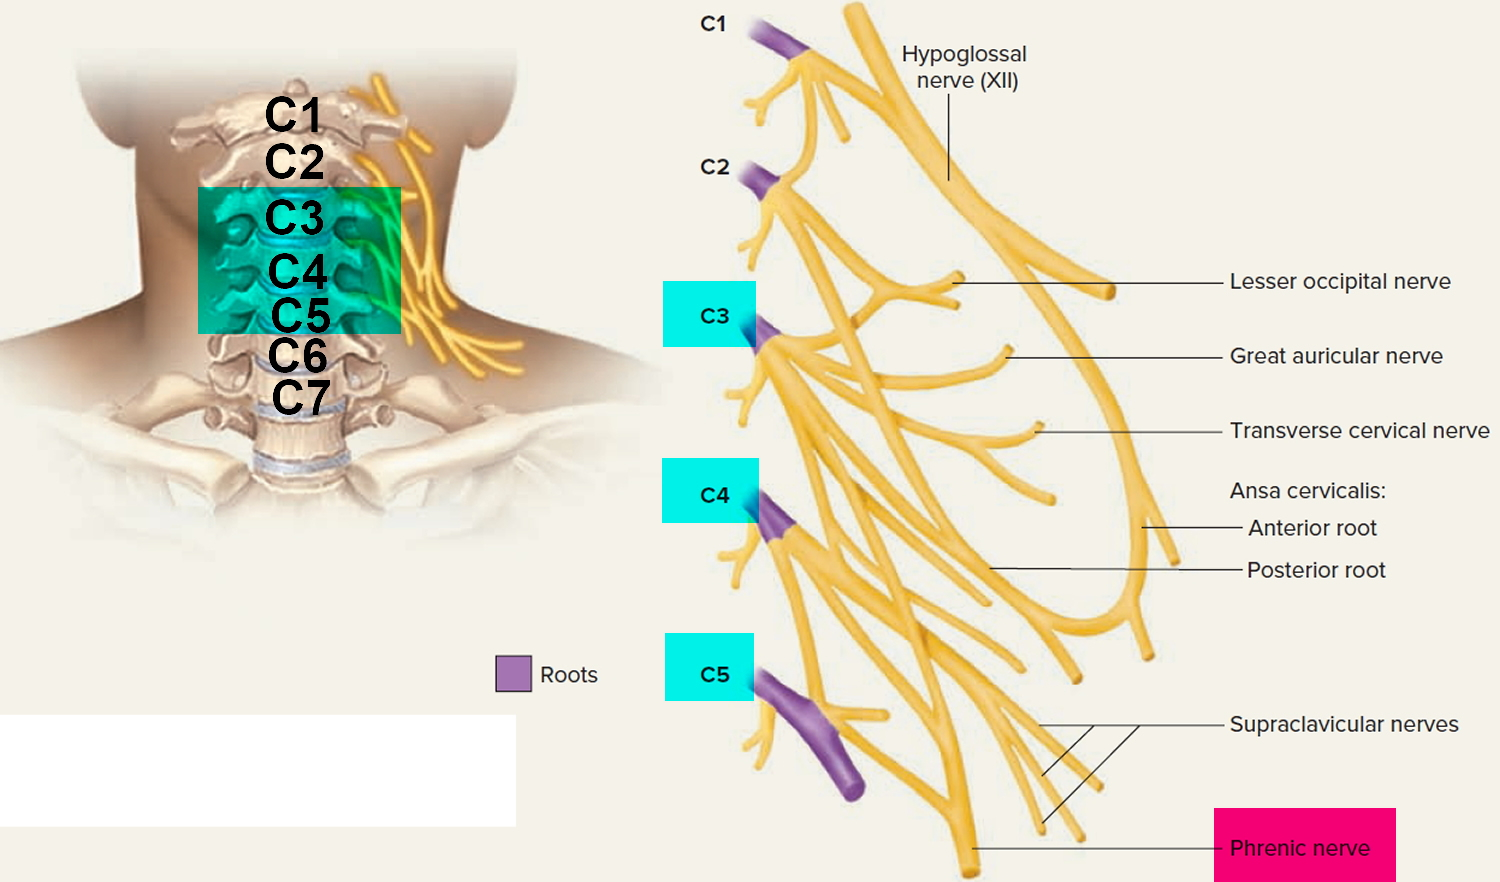 cervical plexus and phrenic nerve